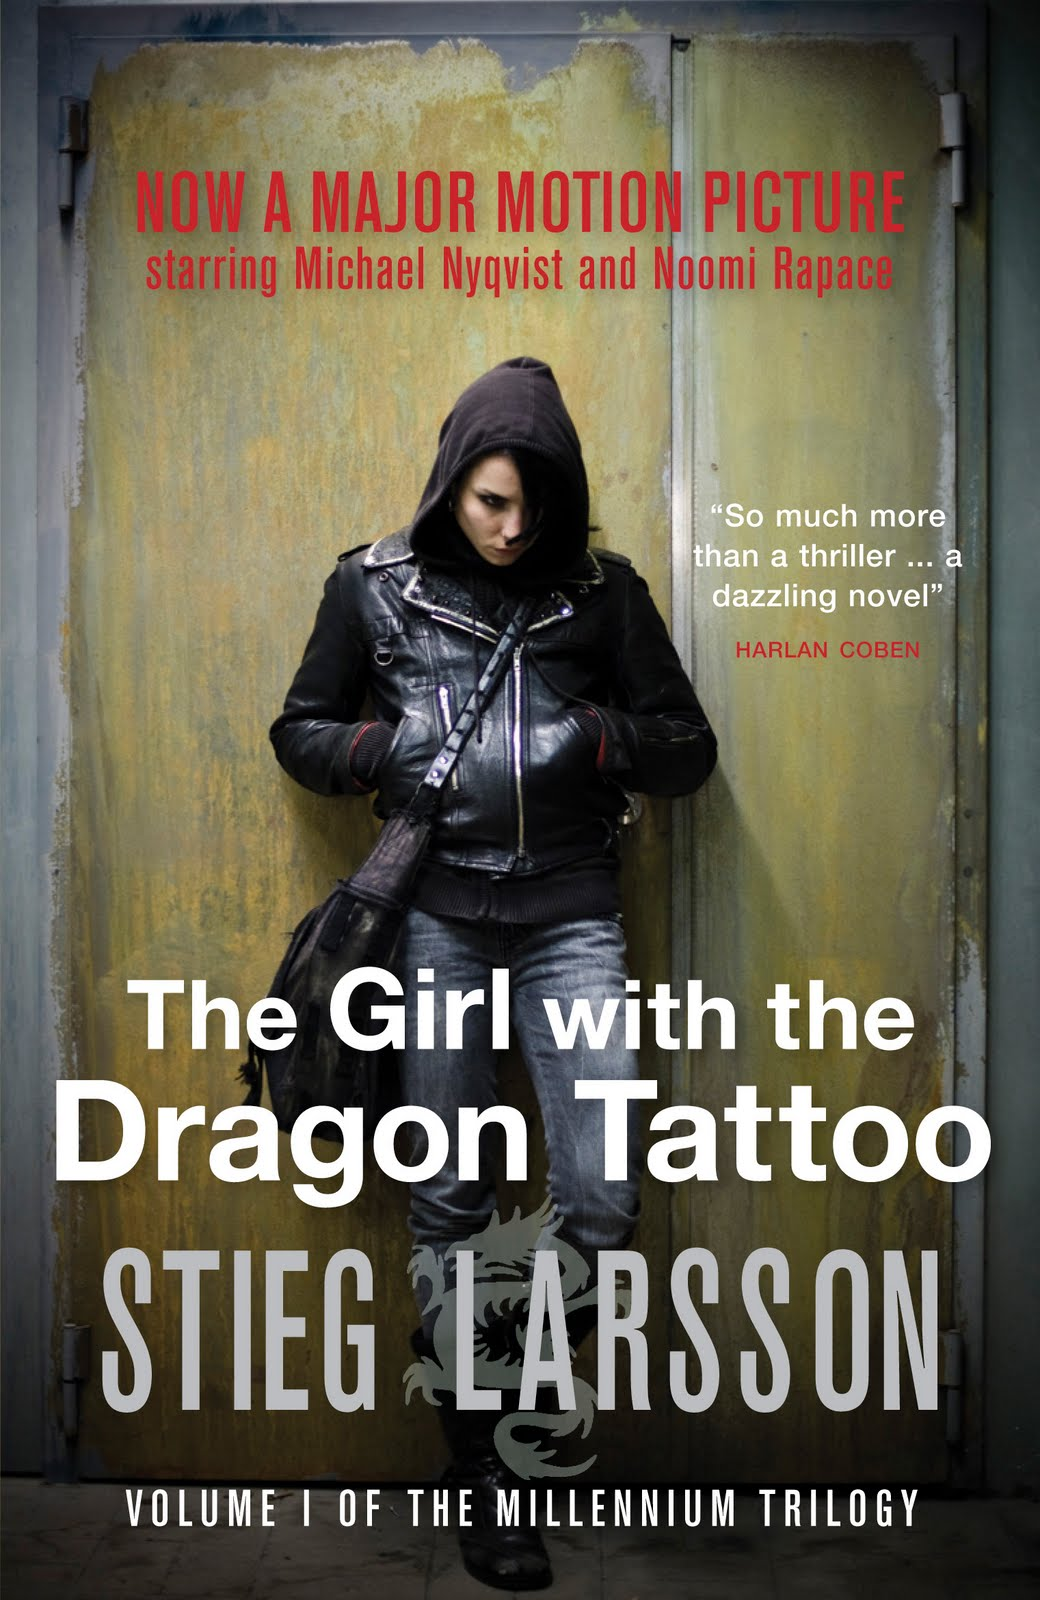 Jla april 2011 for The girl with the dragon tattoo story